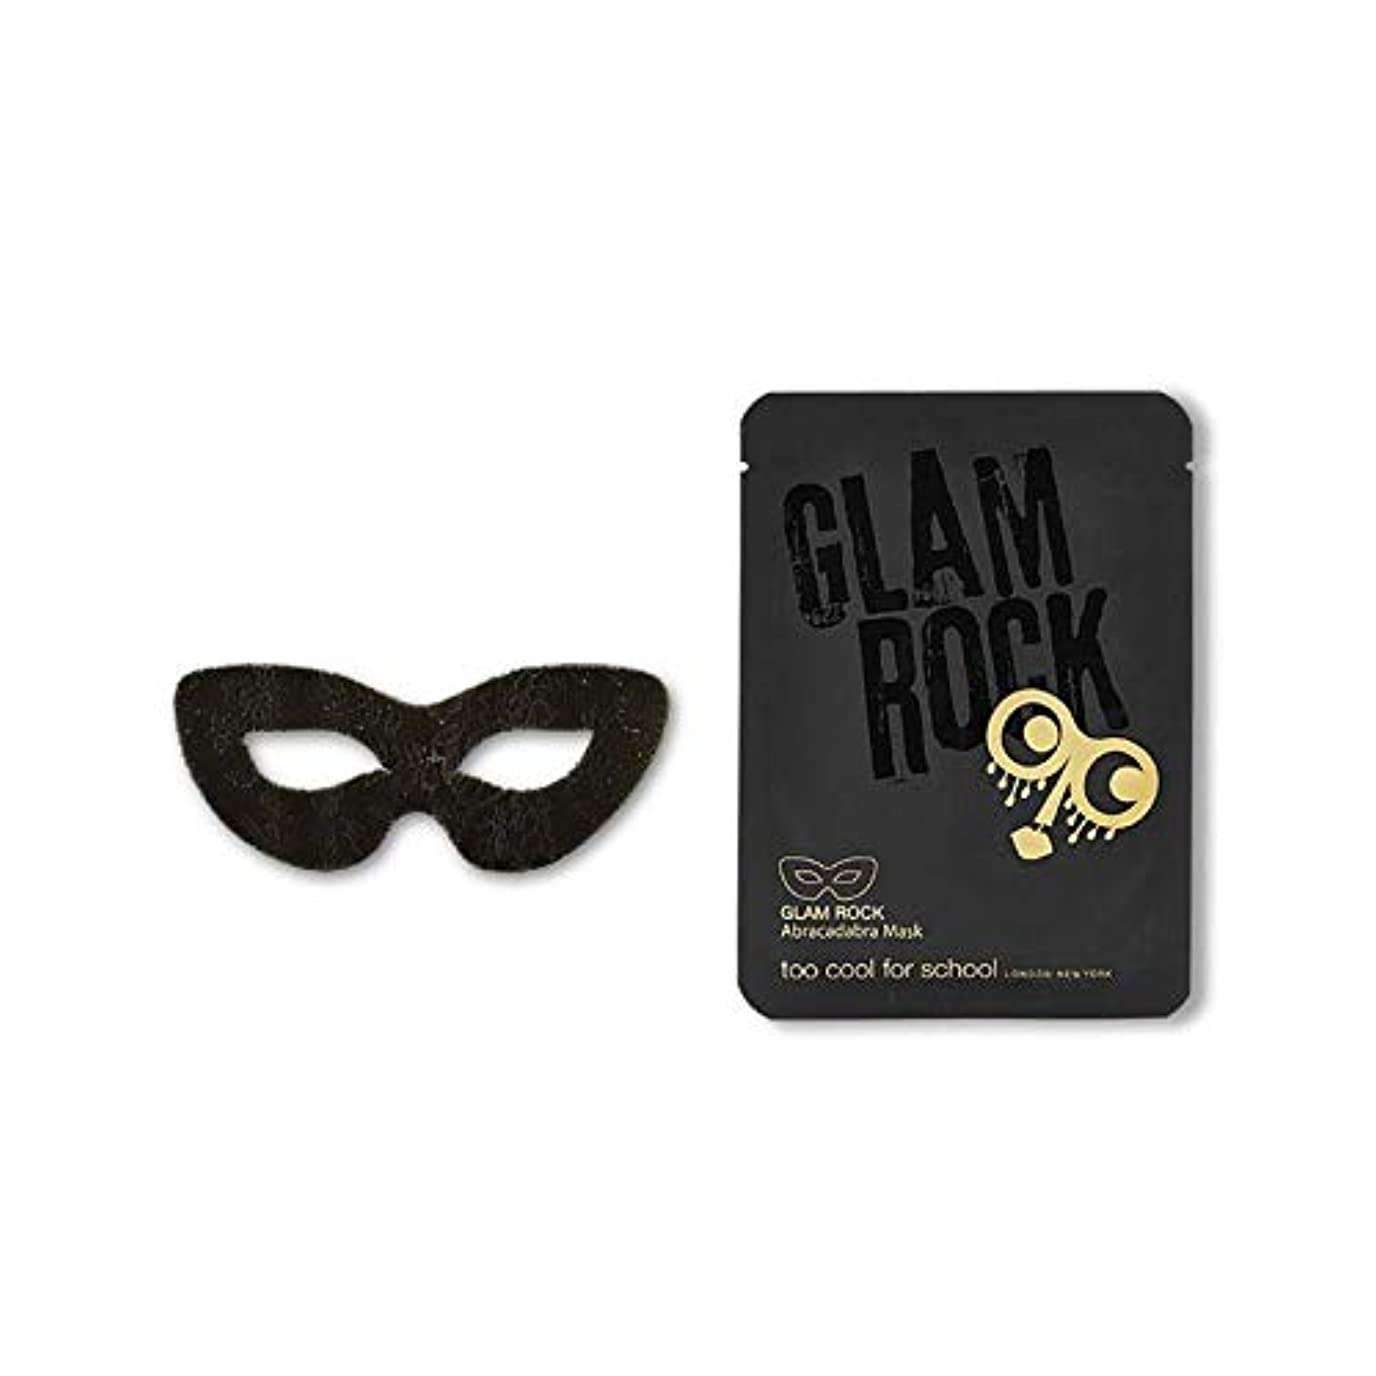 枕デコレーション傘TOO COOL FOR SCHOOL Glam Rock Abracadabra Mask (並行輸入品)